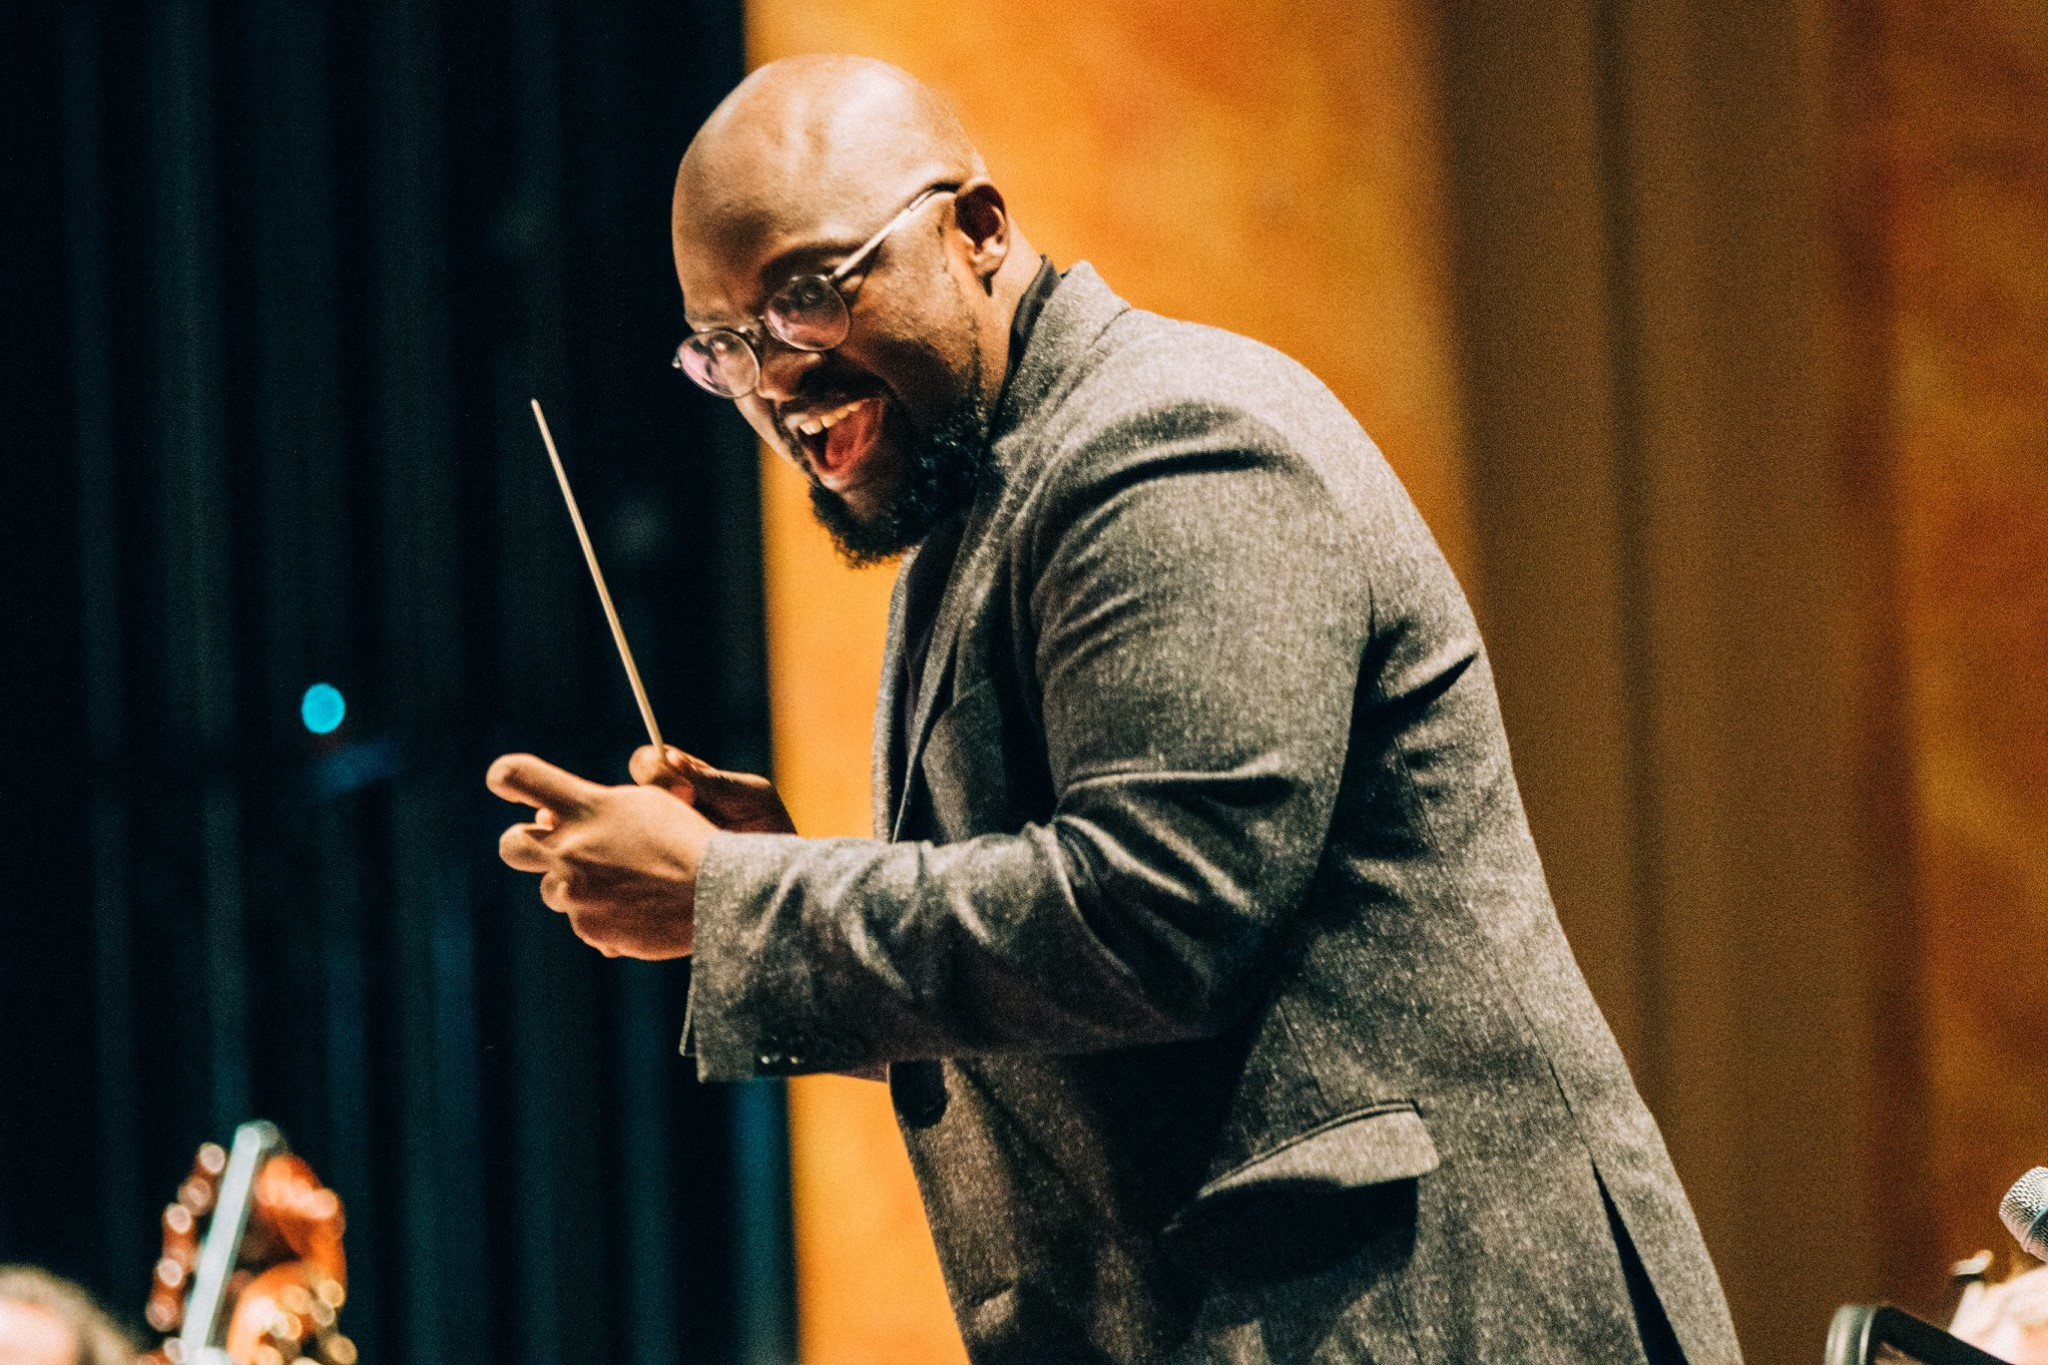 Vimbayi Kaziboni conducts the Gettysburg College Symphony Orchestra at the Majestic Theater (Photo courtesy of Gettysburg College)